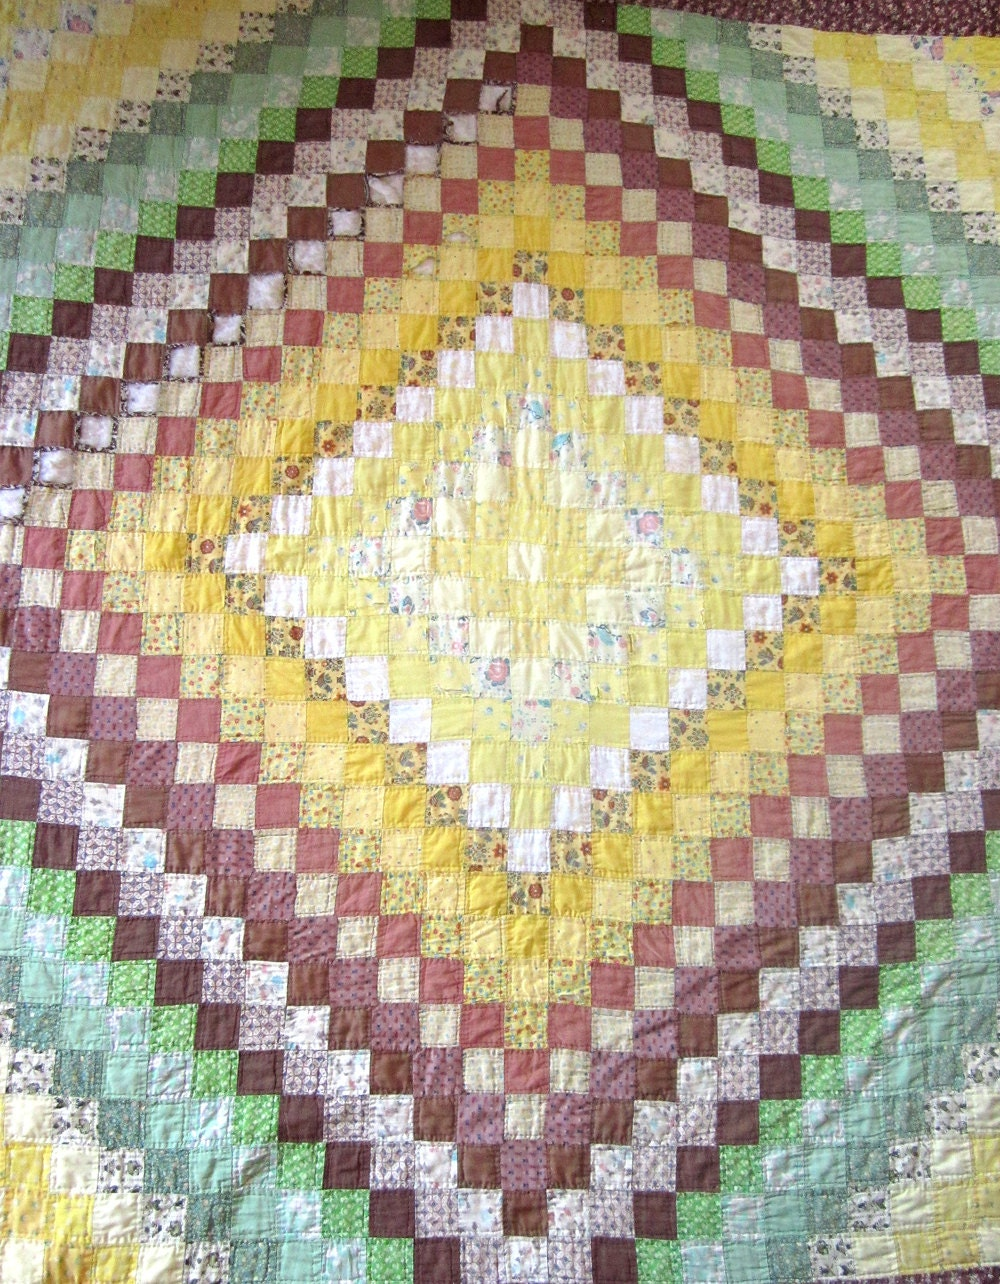 Antique Hand Sewn Patchwork Quilt Repair Brown Green Yellow